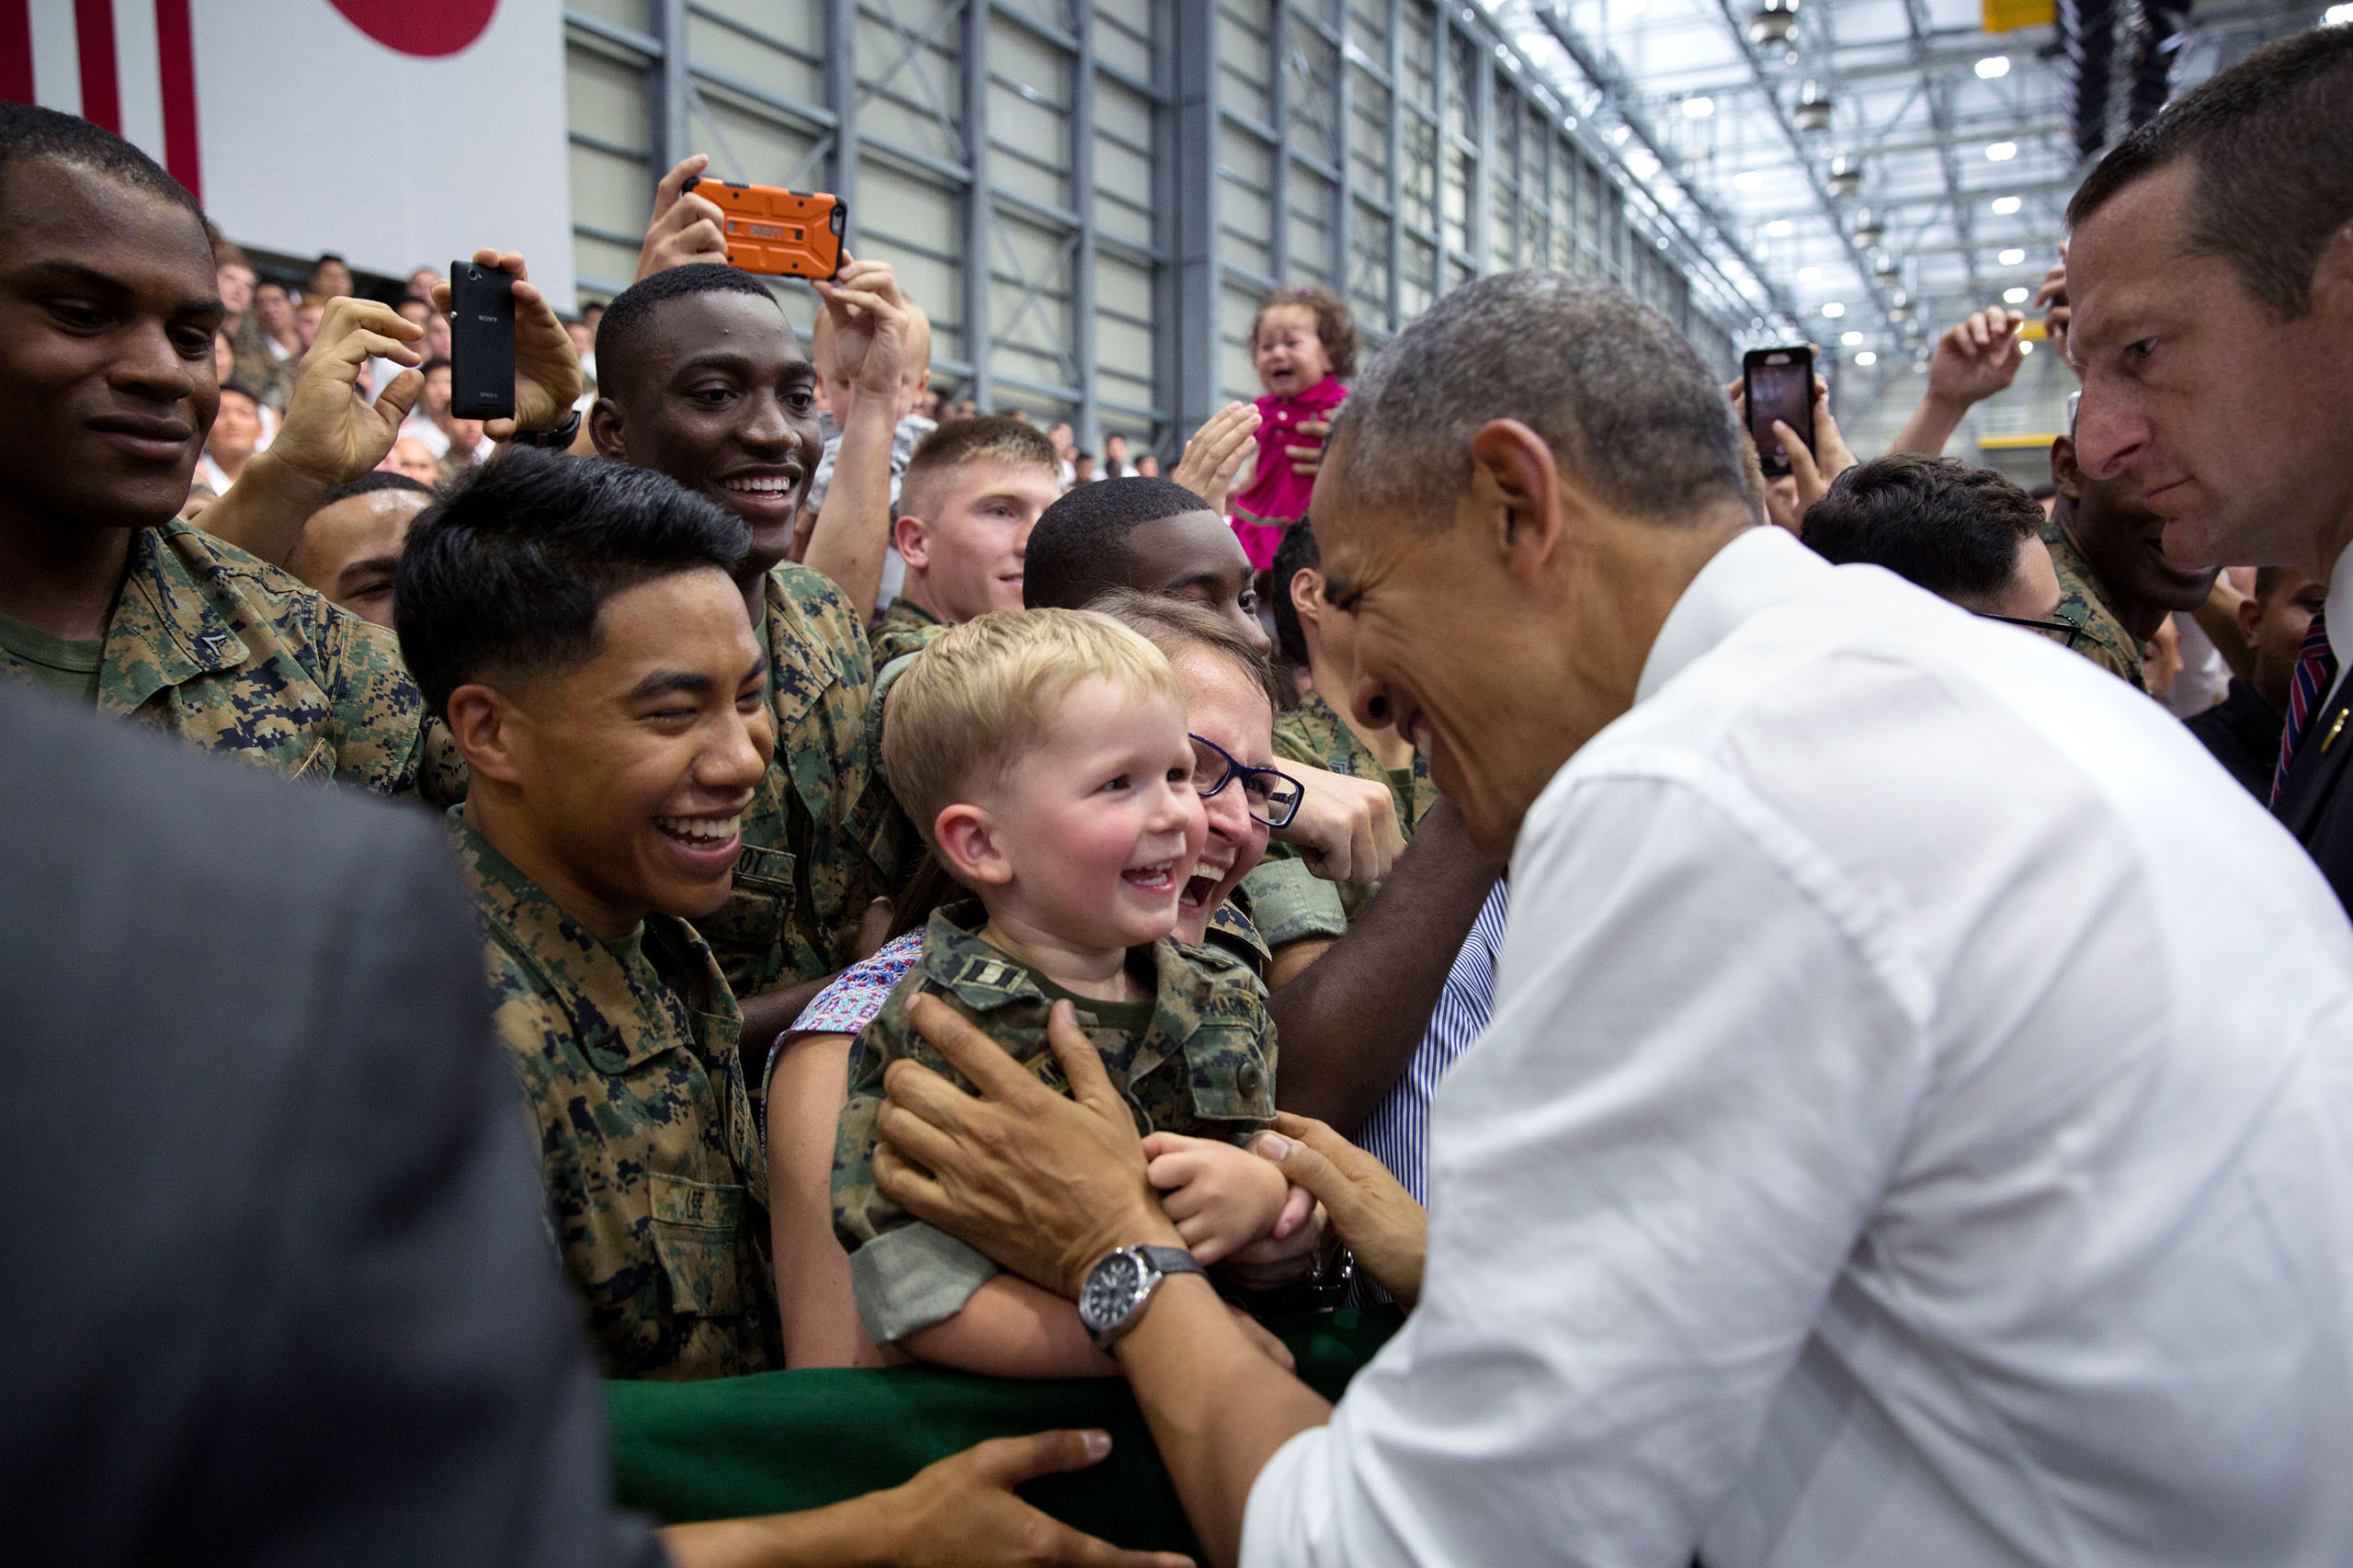 Obama gets a smile from a young boy as he greets audience members after remarks at Marine Corps Air Station at Iwakuni, Japan, on May 27, 2016.